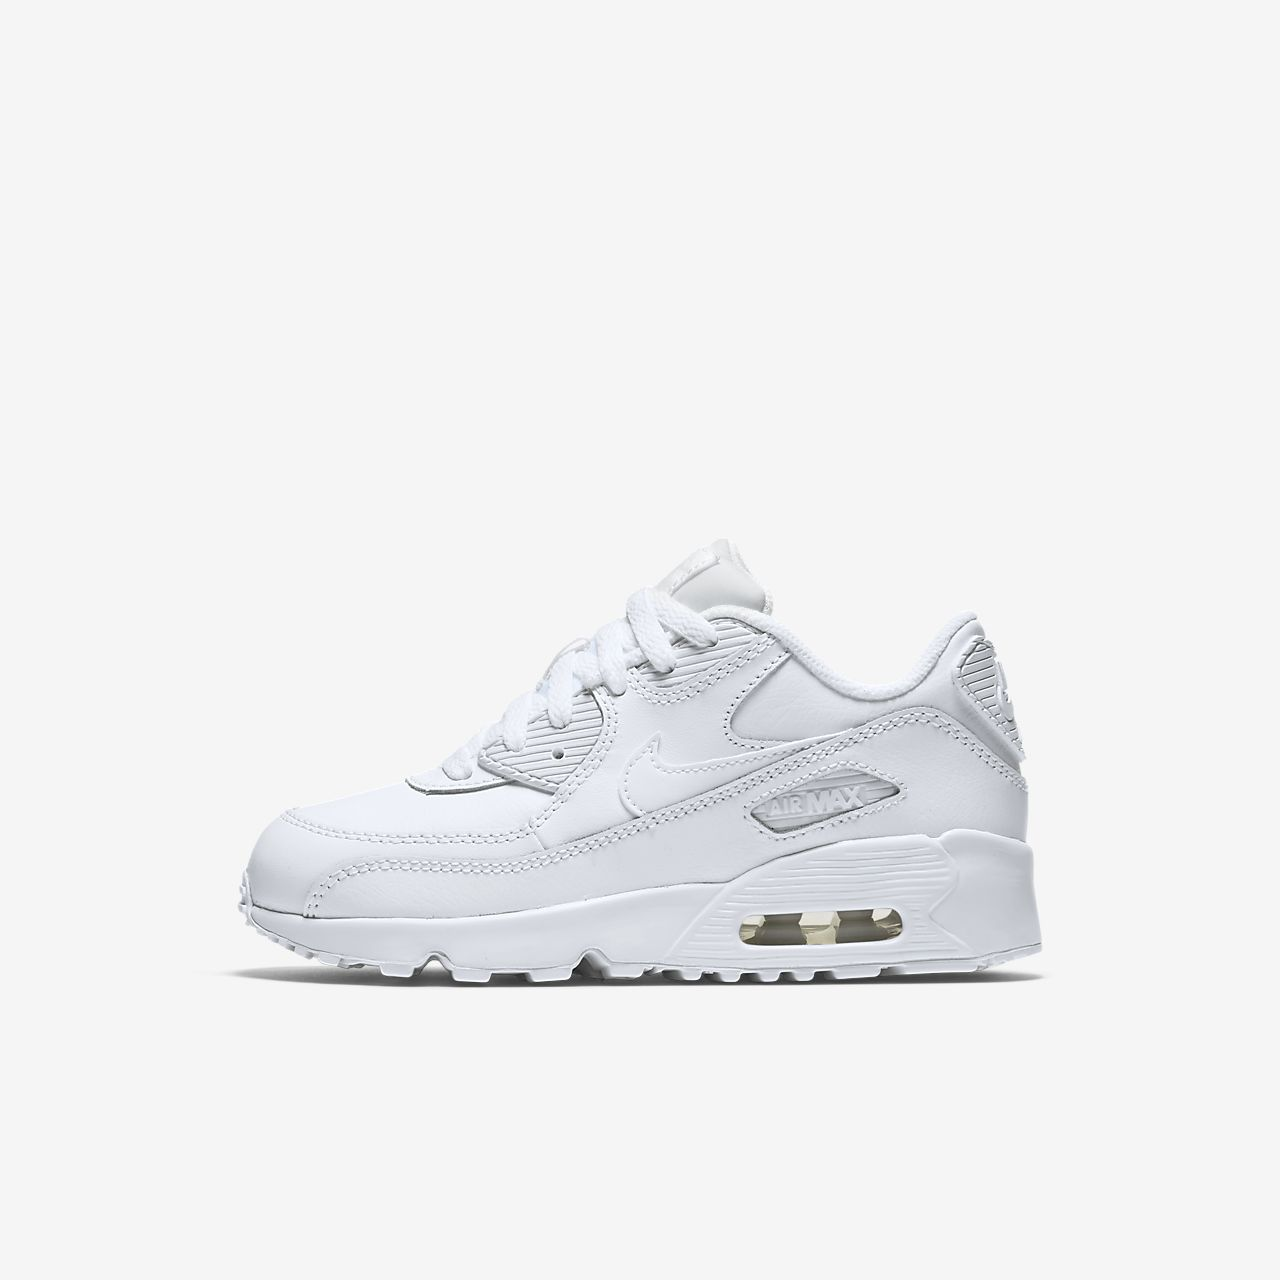 shoes, white, nike air, nike air max 90, nike shoes, nike